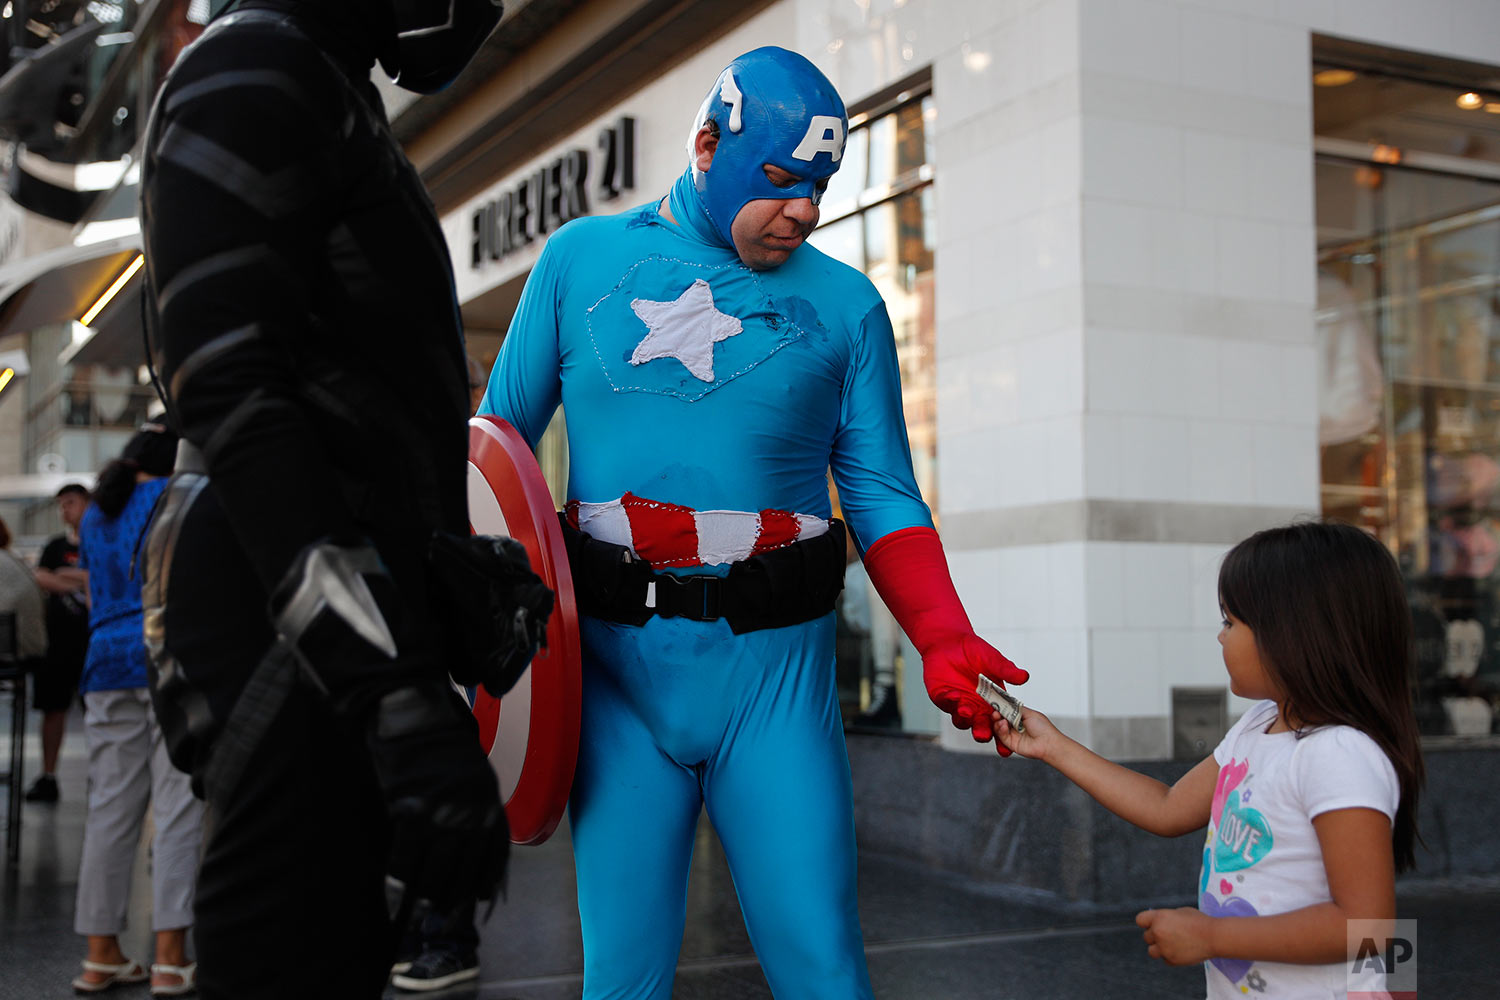 In this Monday, May 22, 2017 photo, a young tourist tips Justin Harrison, wearing a homemade Captain America costume, and Harrison's roommate, Reginald Jackson in a Black Panther costume after taking pictures with them on Hollywood Boulevard in Los Angeles. While the Hollywood we see in film is a place of glamour and beautiful celebrities, the cast of superheroes filling Hollywood Boulevard is frequently anything but. Many are people struggling to make a buck as they pursue their dream of stardom. (AP Photo/Jae C. Hong)